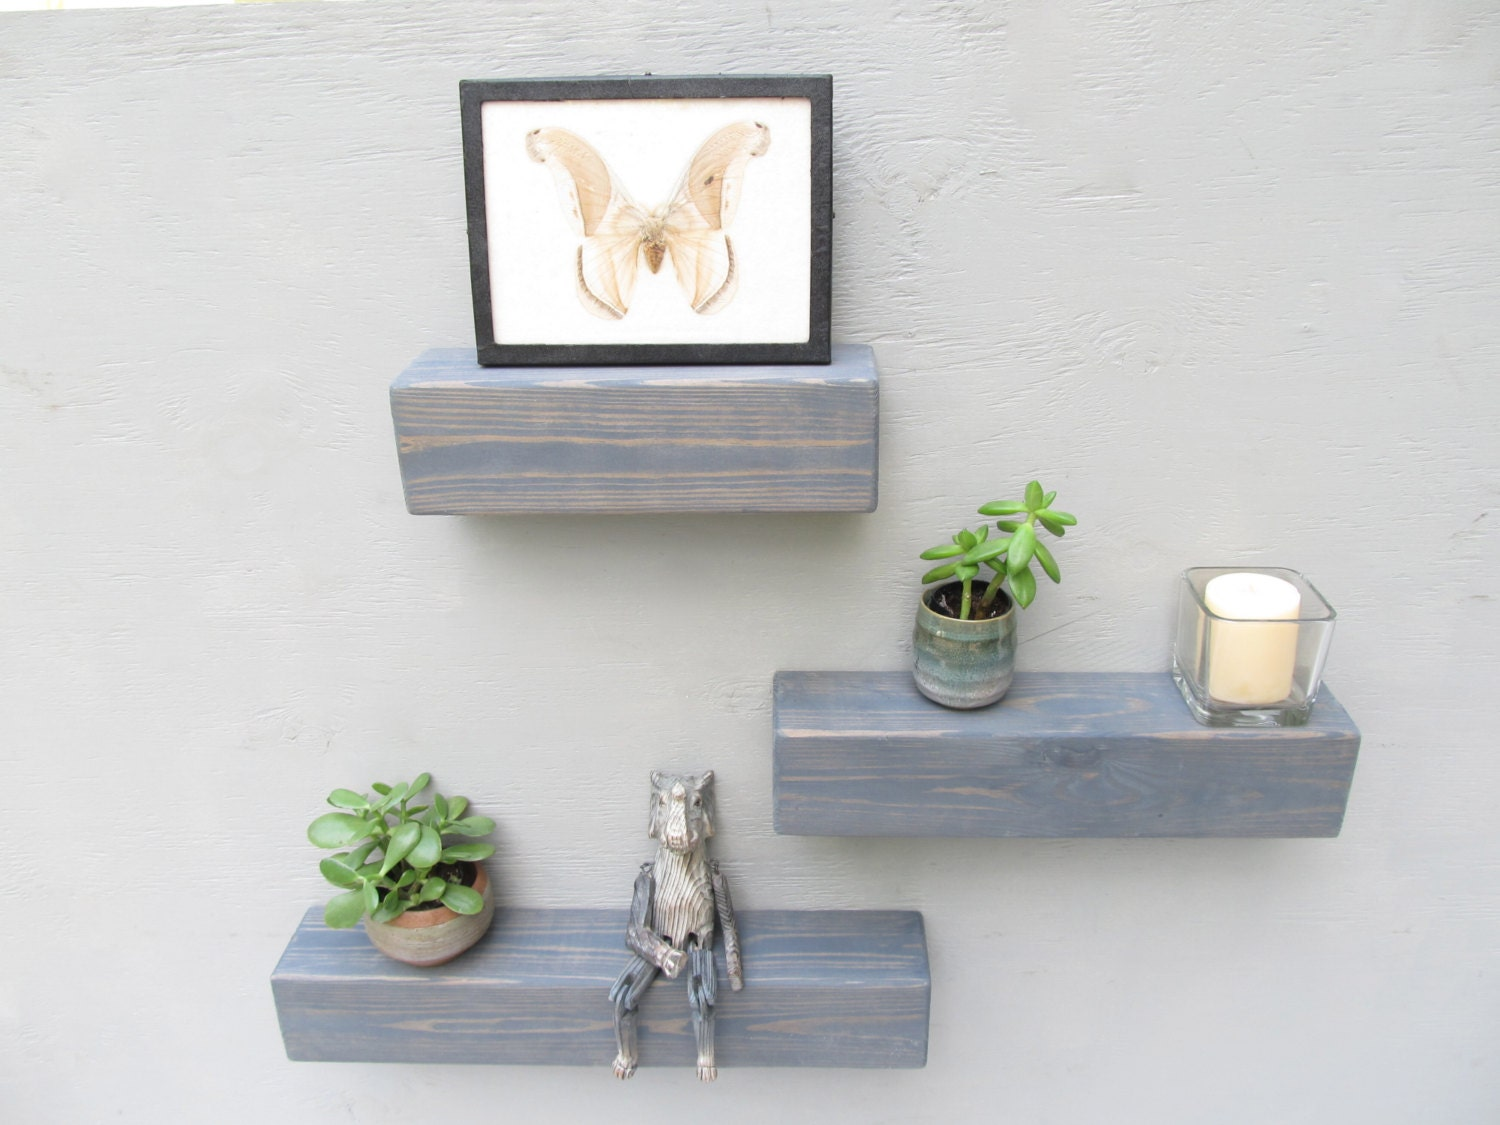 Lastest Bathroom Shelf Decor On Pinterest  Half Bath Decor Half Bathroom